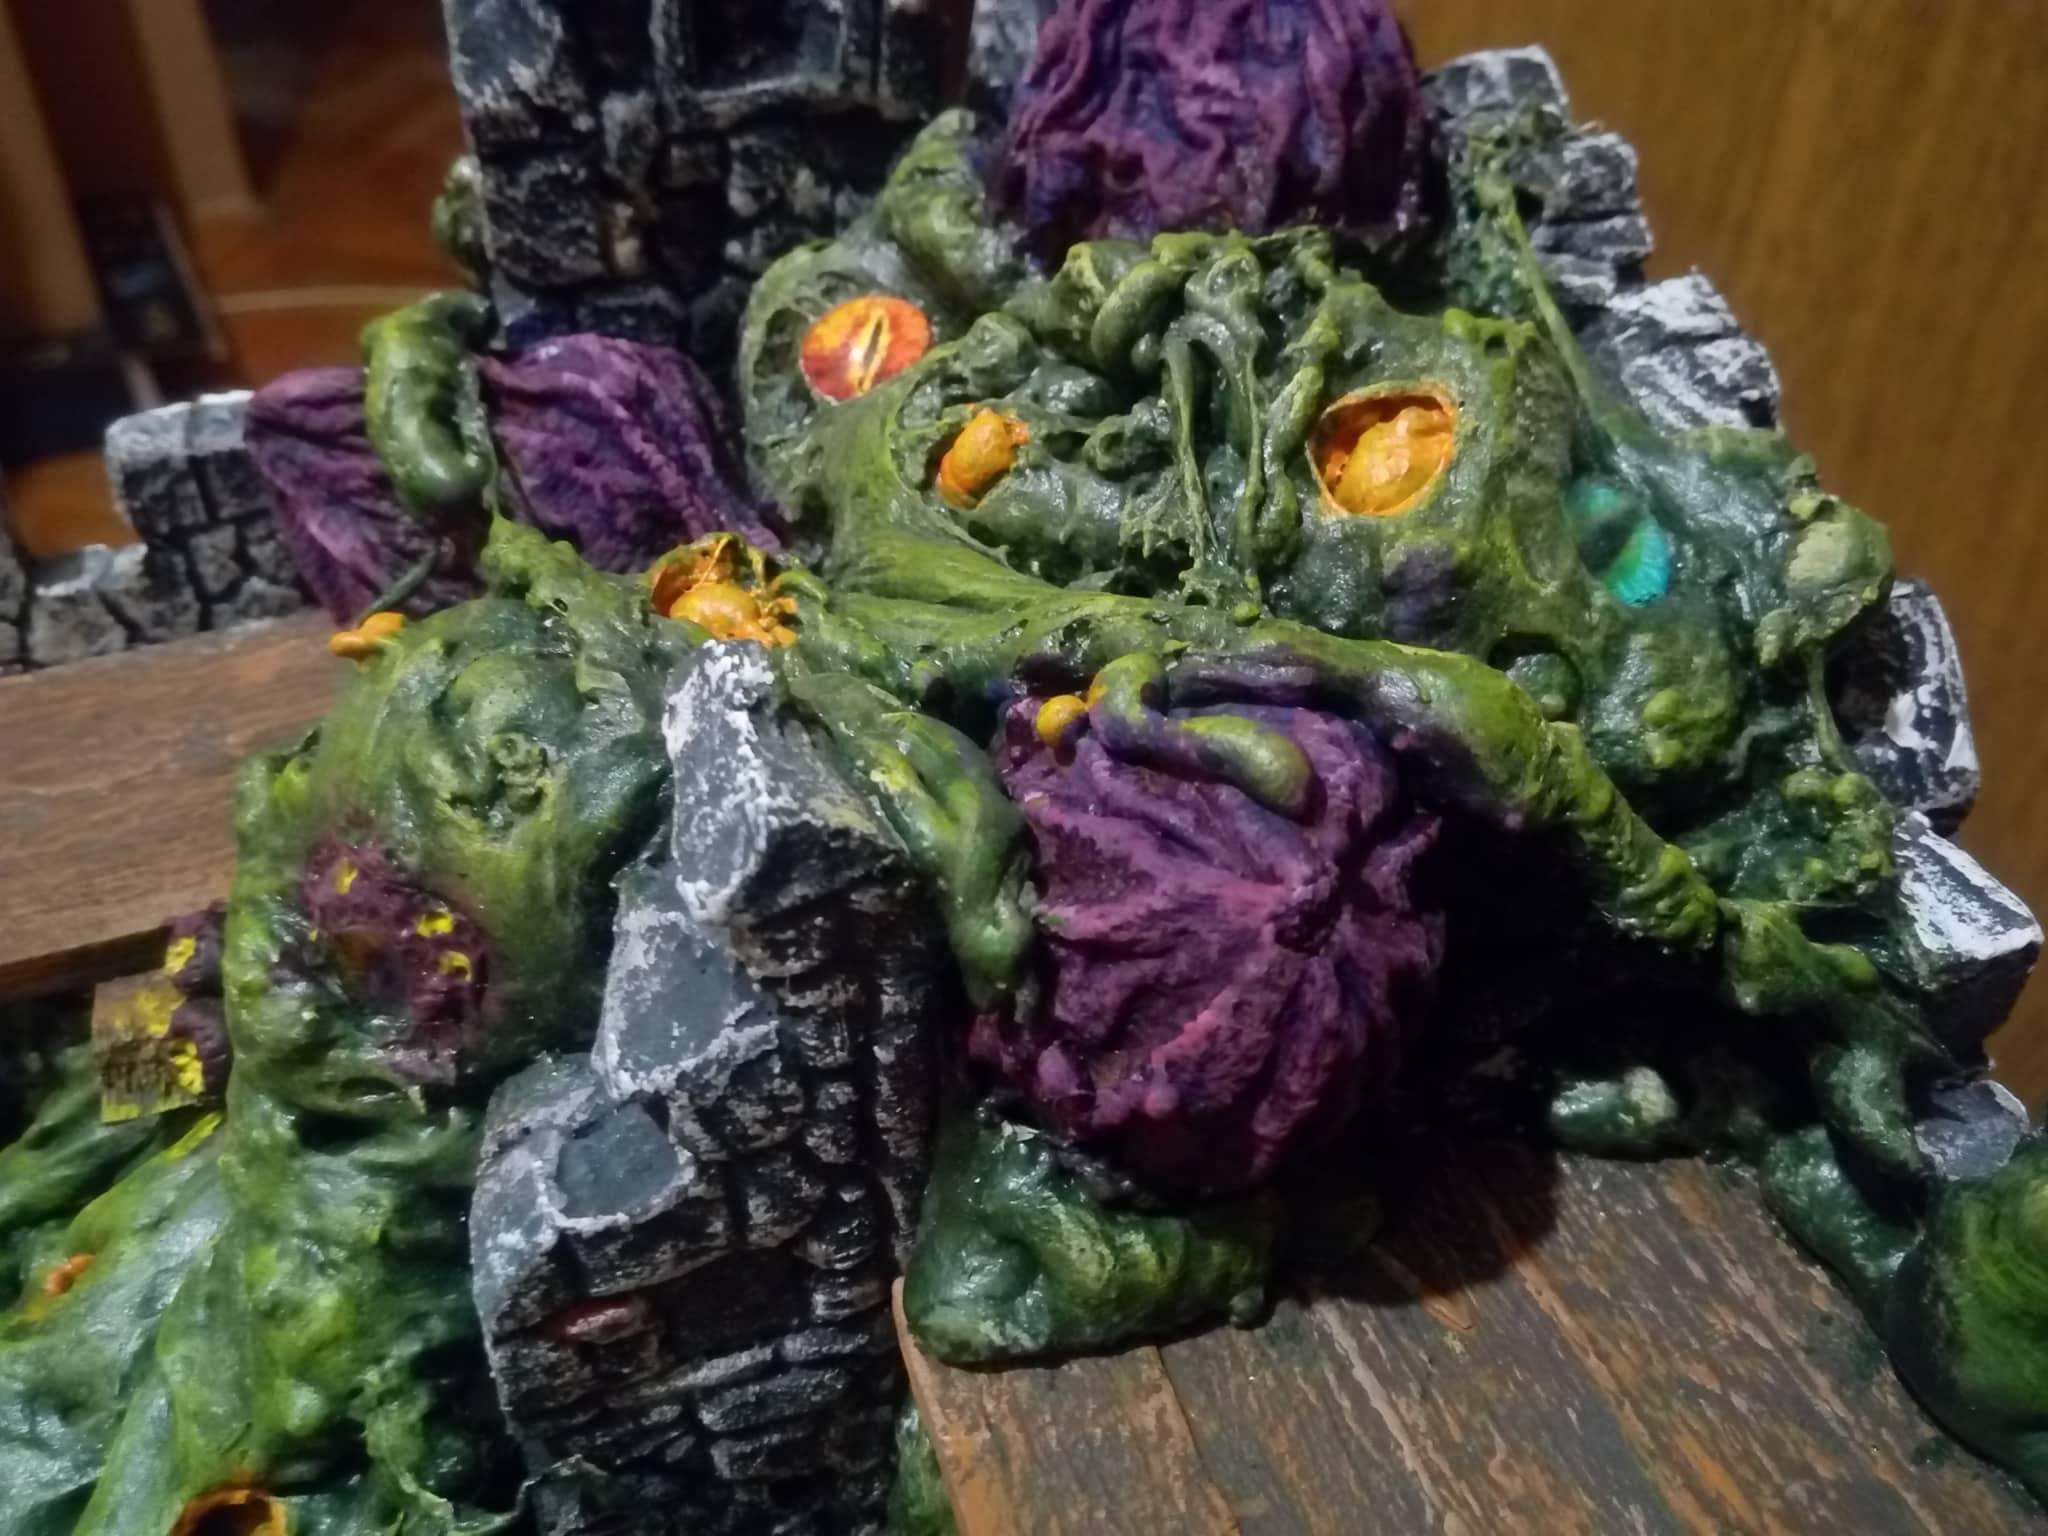 Age, Bretonnians, Eggs, Eyes, Fort, Infested, Mousillon, Nurgle, Sigmar, Stone, Tentacles, Terrain, Ulcers, Walls, Warhammer Fantasy, Worms